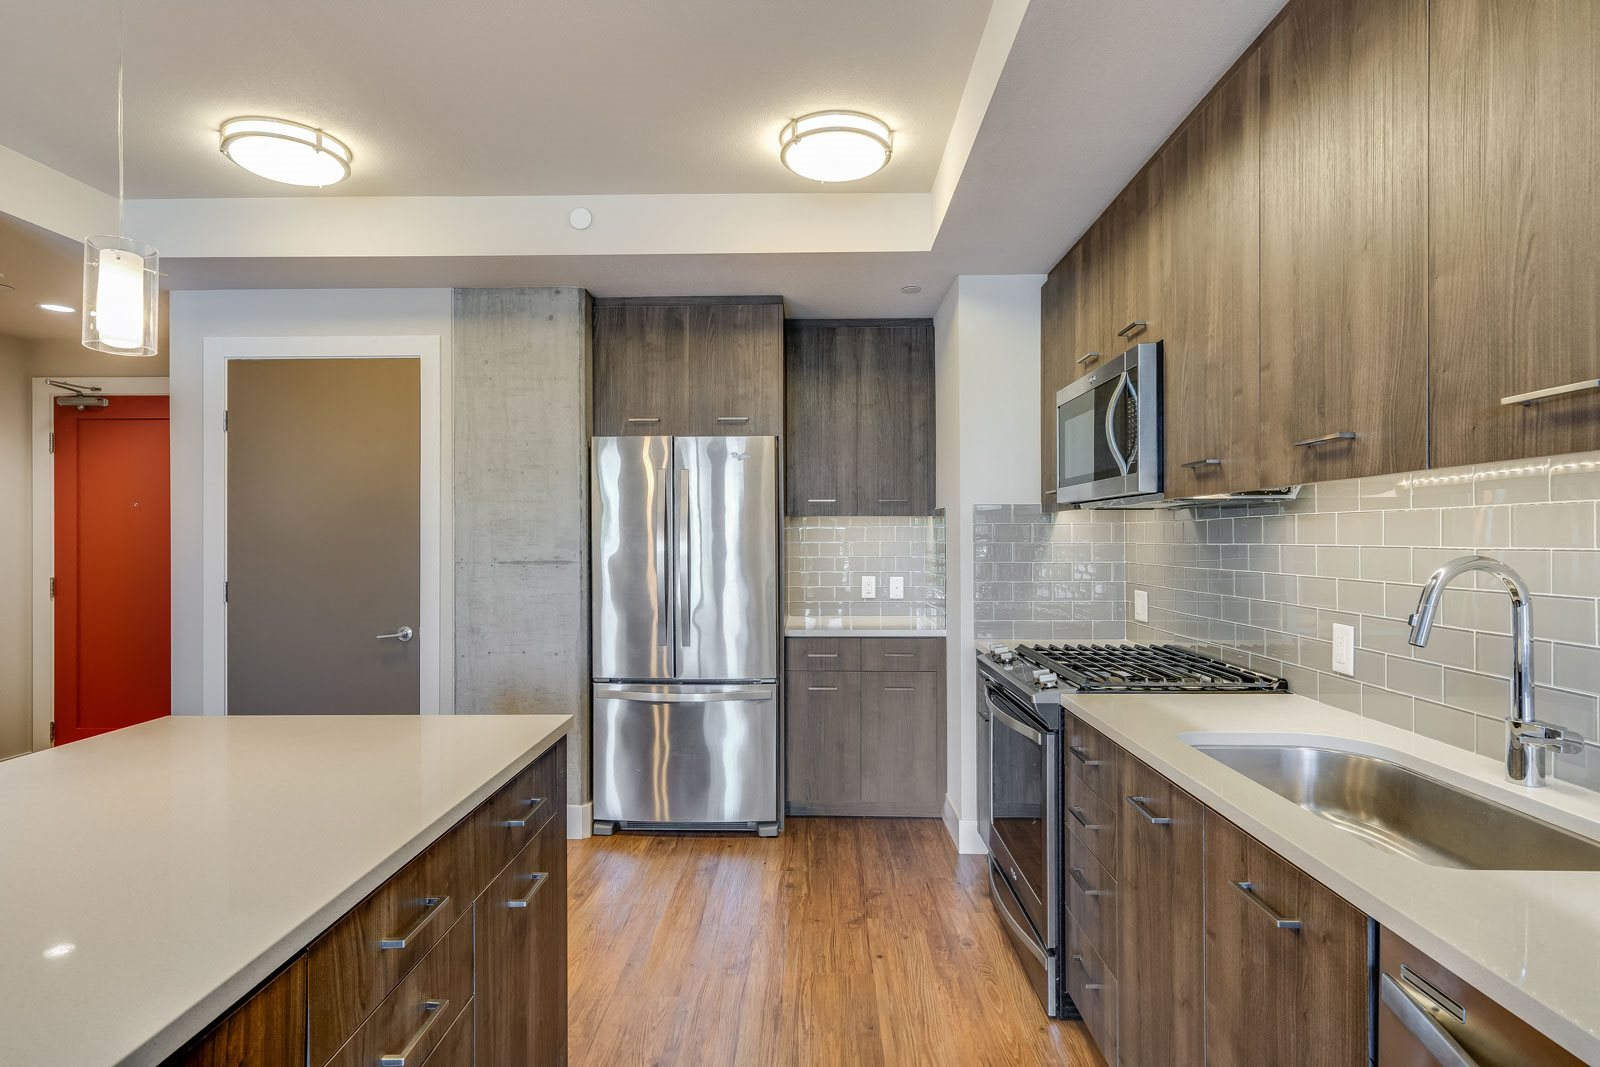 Quartz Countertops at The Marston by Windsor, 825 Marshall Street, Redwood City